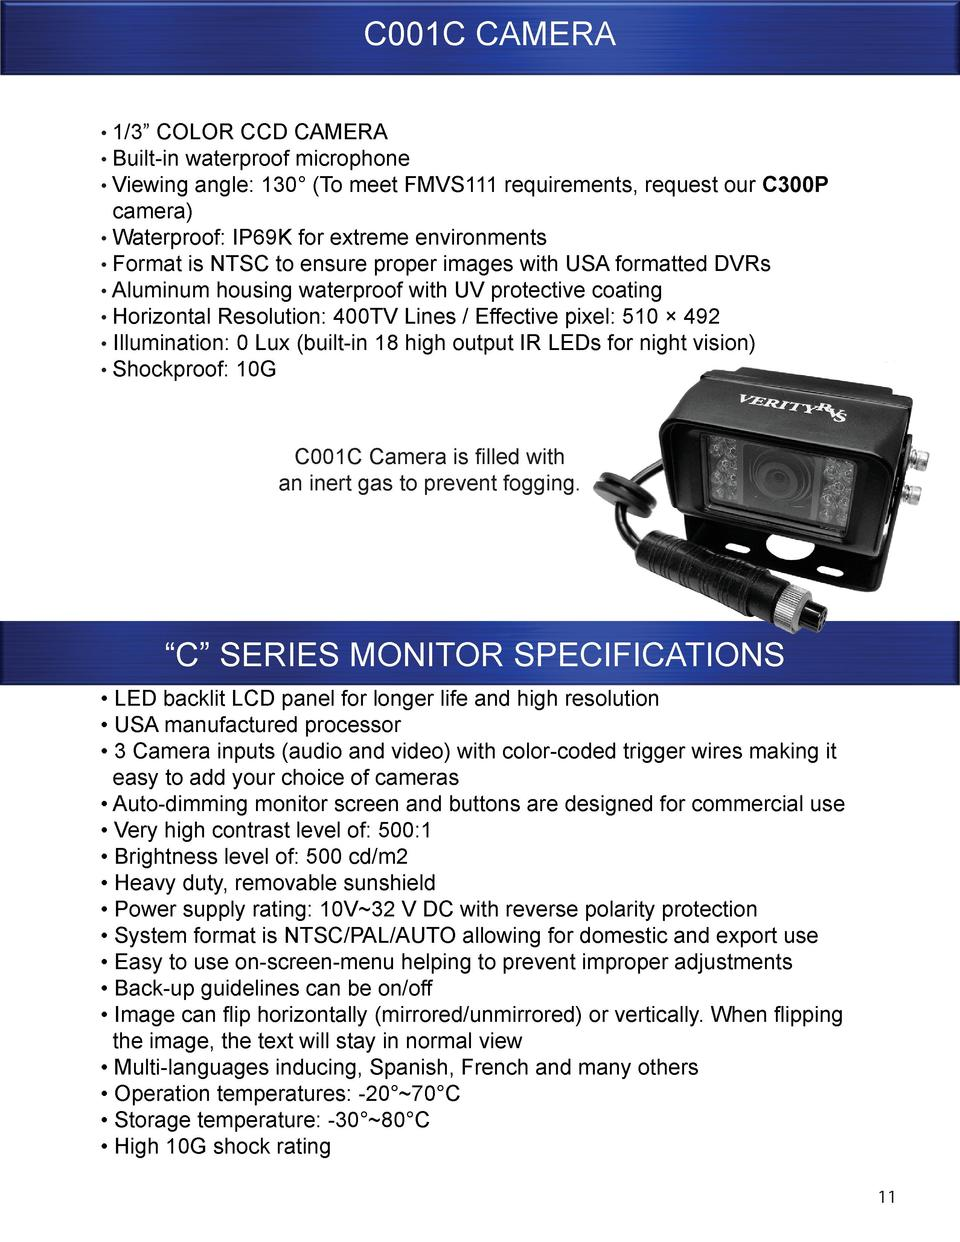 C001C CAMERA     1 3    COLOR CCD CAMERA     Built-in waterproof microphone     Viewing angle  130    To meet FMVS111 requ...